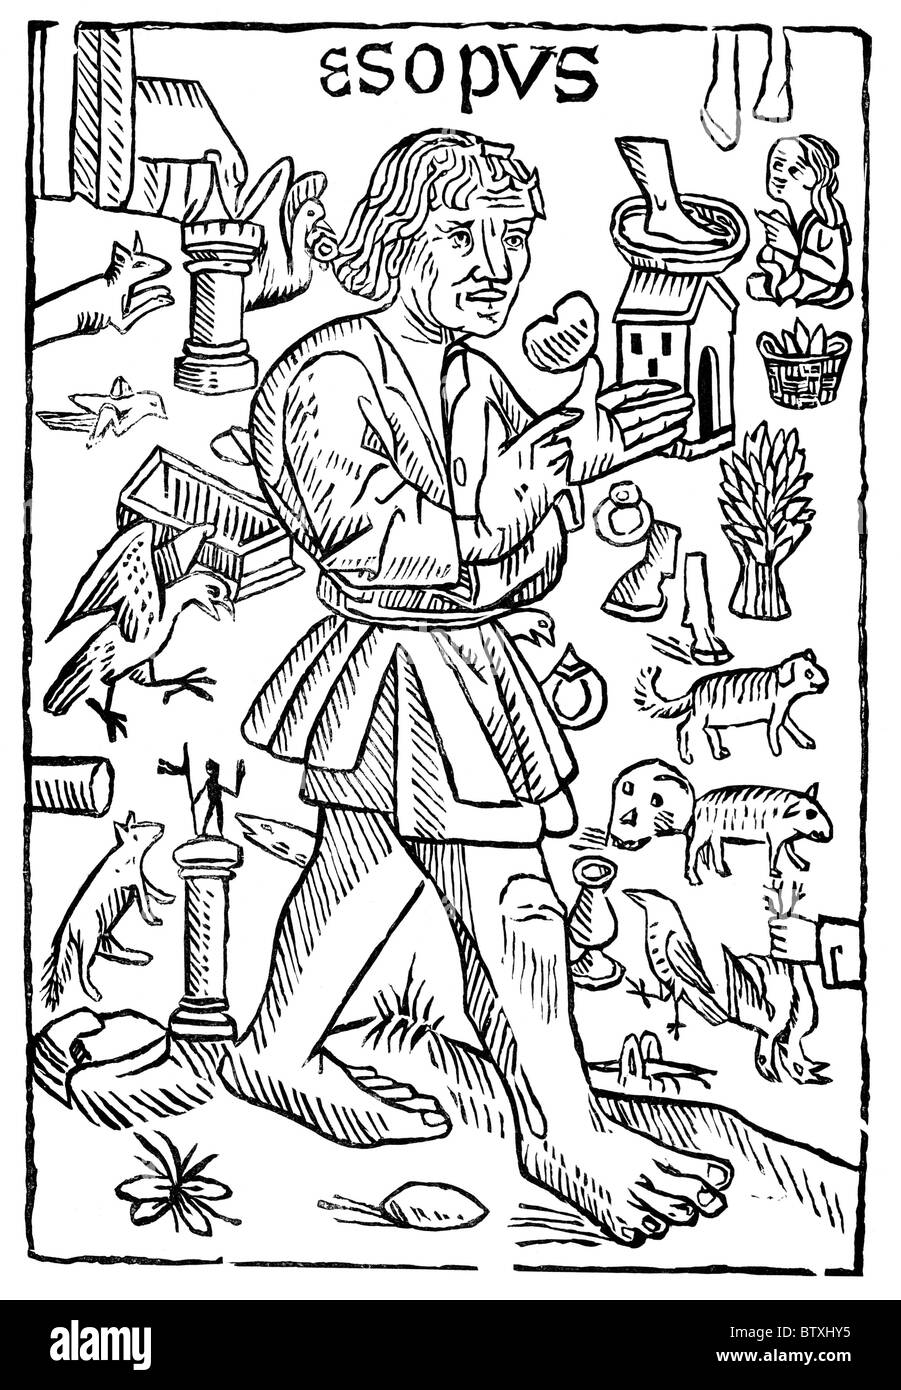 Portrait of Aesop from the frontispiece to William Caxton's 'Fables of Aesop'; Black and White Illustration; - Stock Image